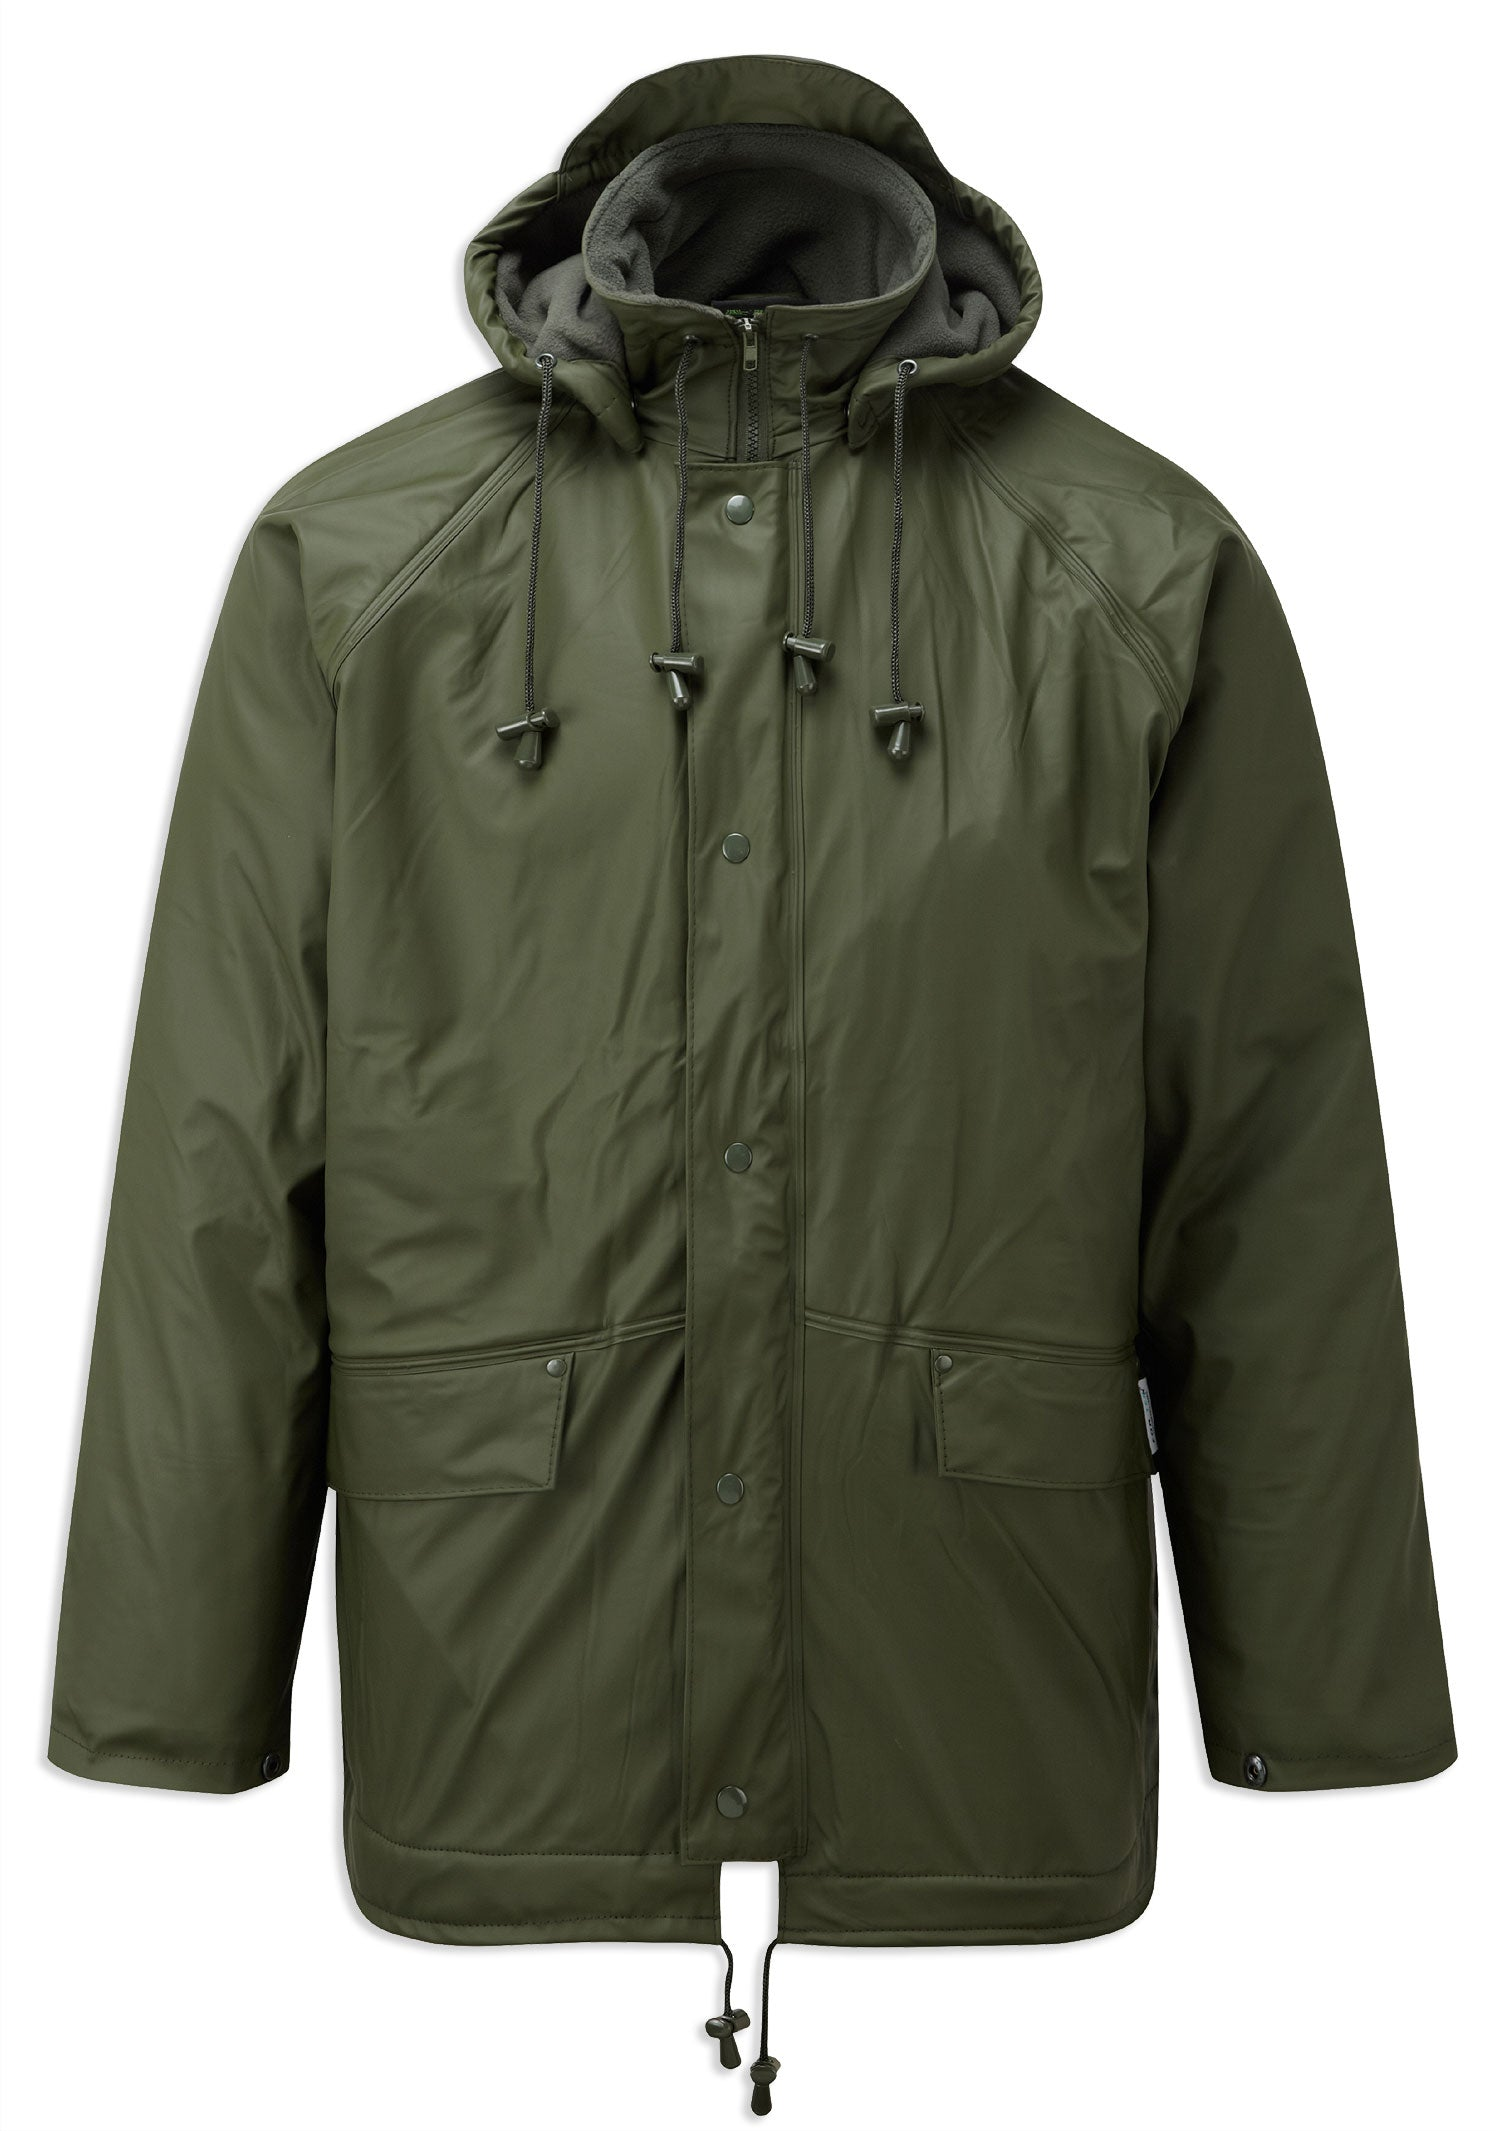 FLEX Fleece Lined waterproof jacket GREEN Fortexfleece 219